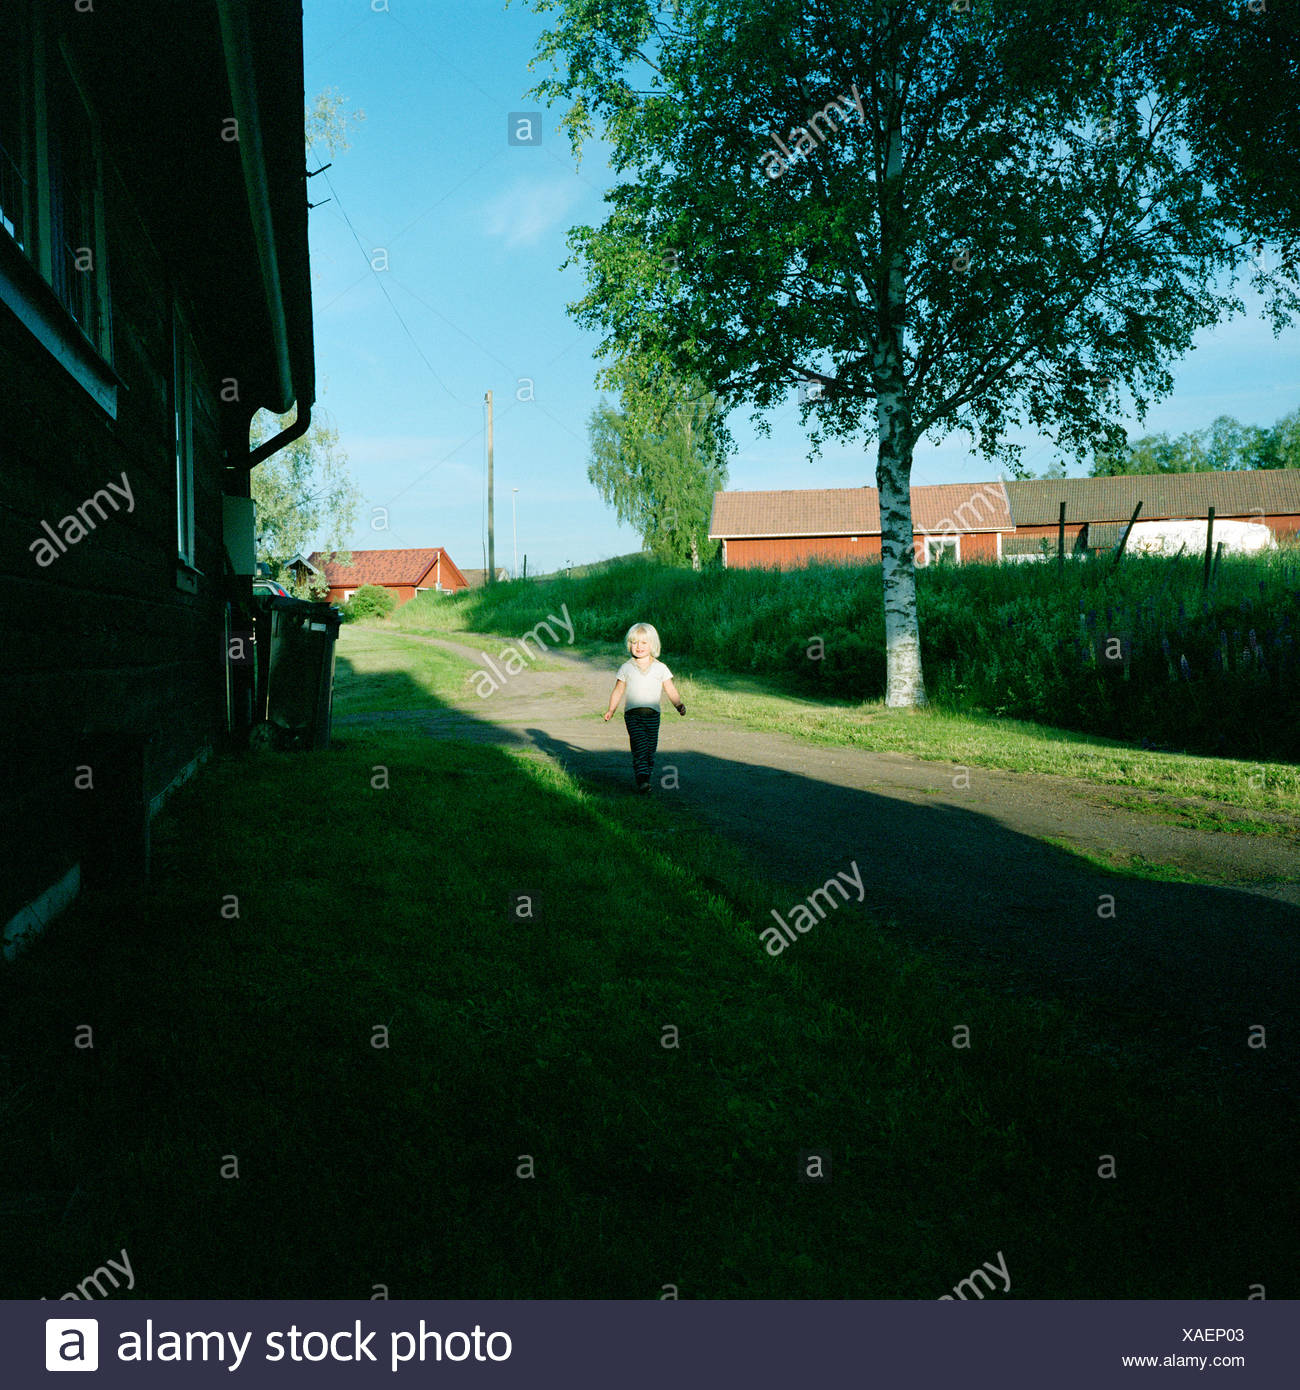 A girl on a gravelled road, Dalarna, Sweden. - Stock Image